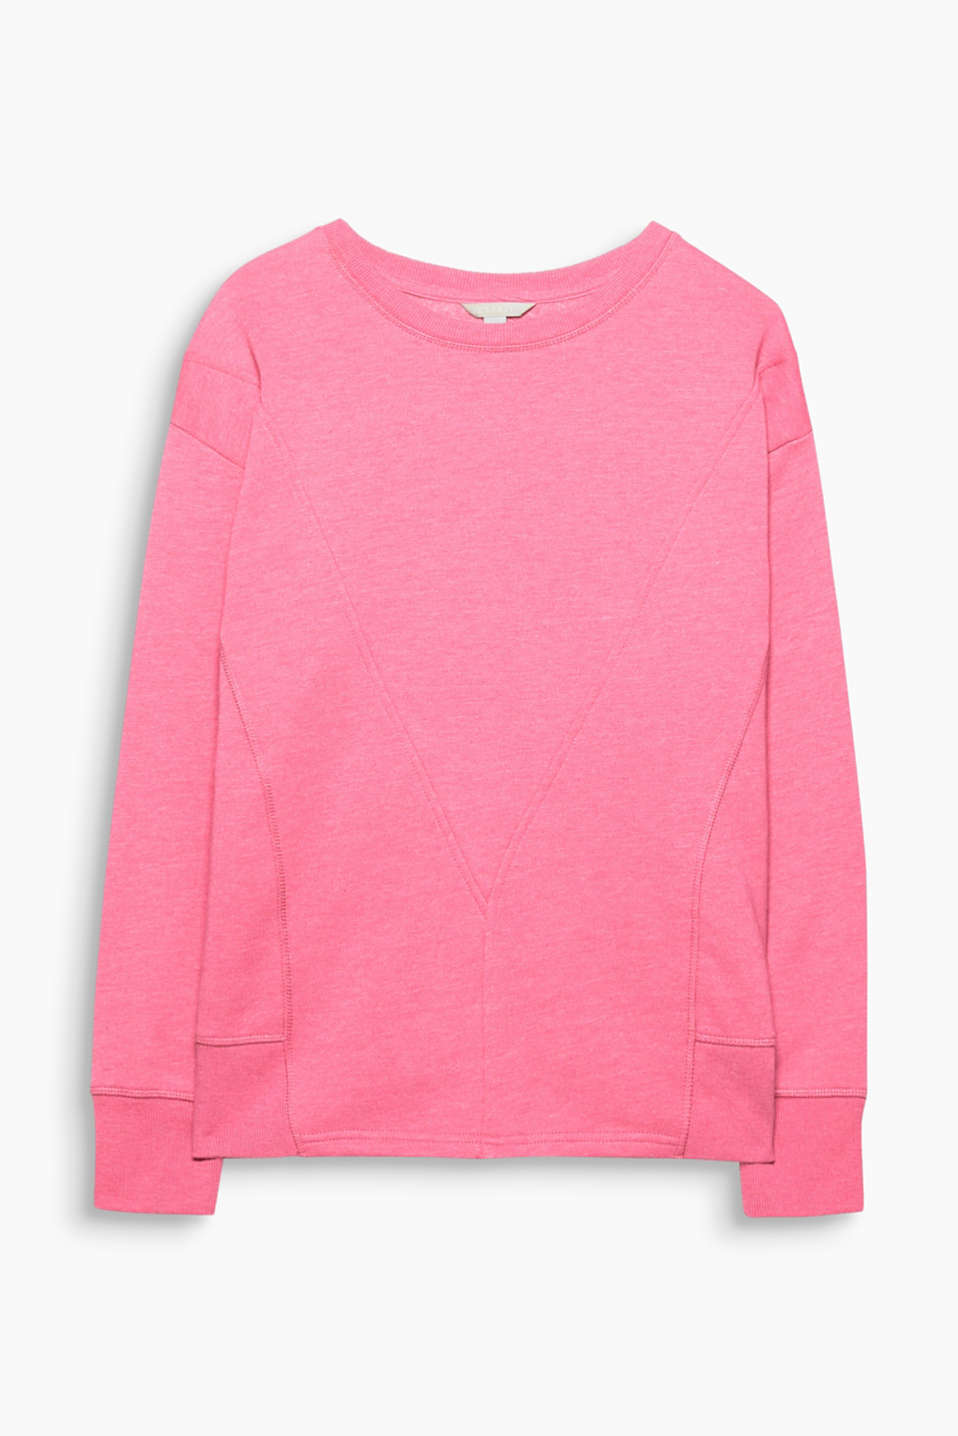 This napped sweatshirt with decorative stitching and ribbed trims on the edges is perfect for warming up or relaxing!